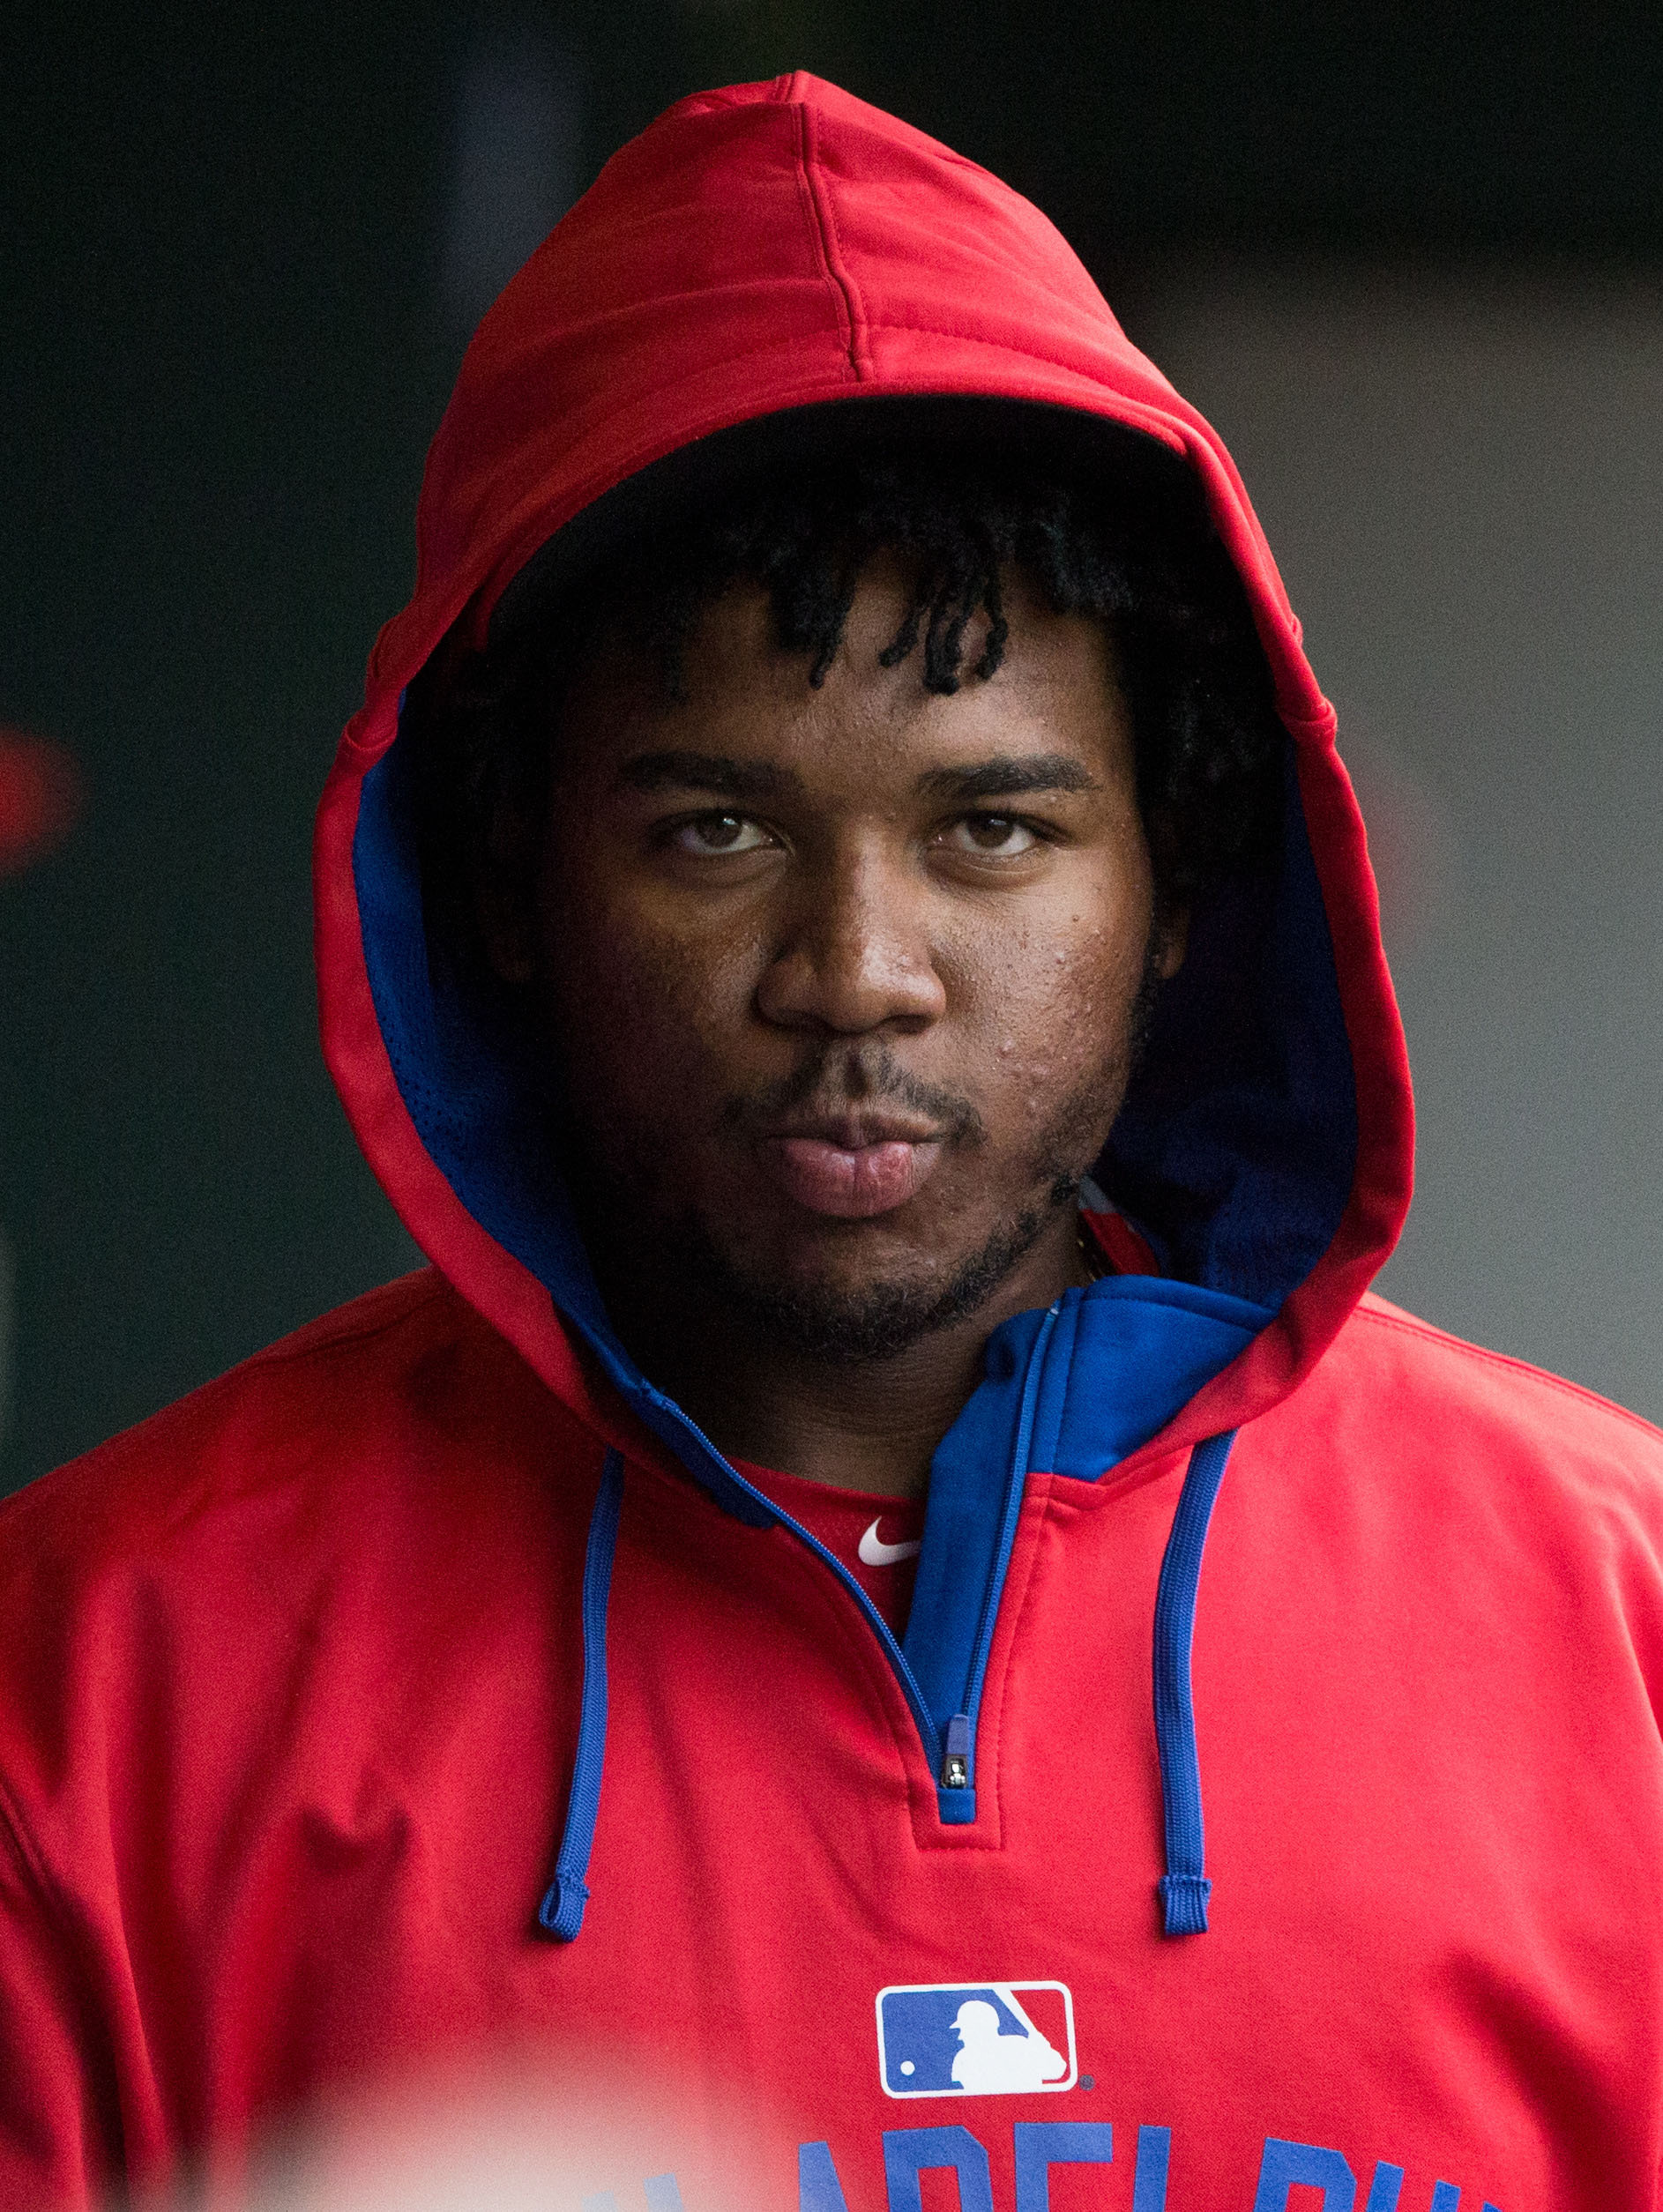 Maikel Franco is staring into your soul. Seriously though, he is one of the only hopes in Philly.